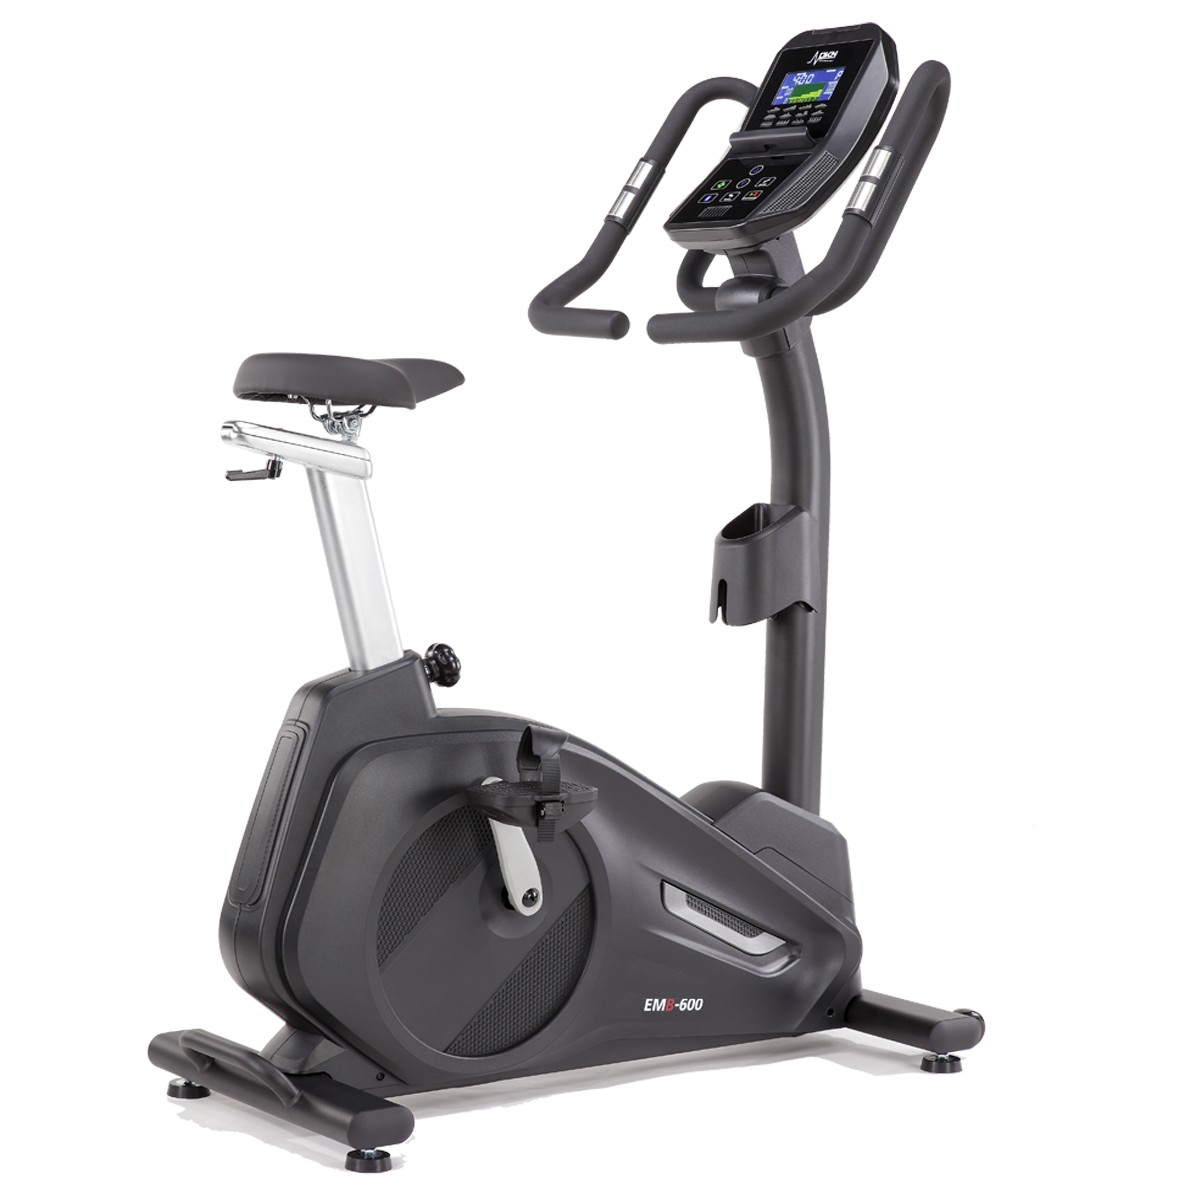 EMB-600 Exercise Bike